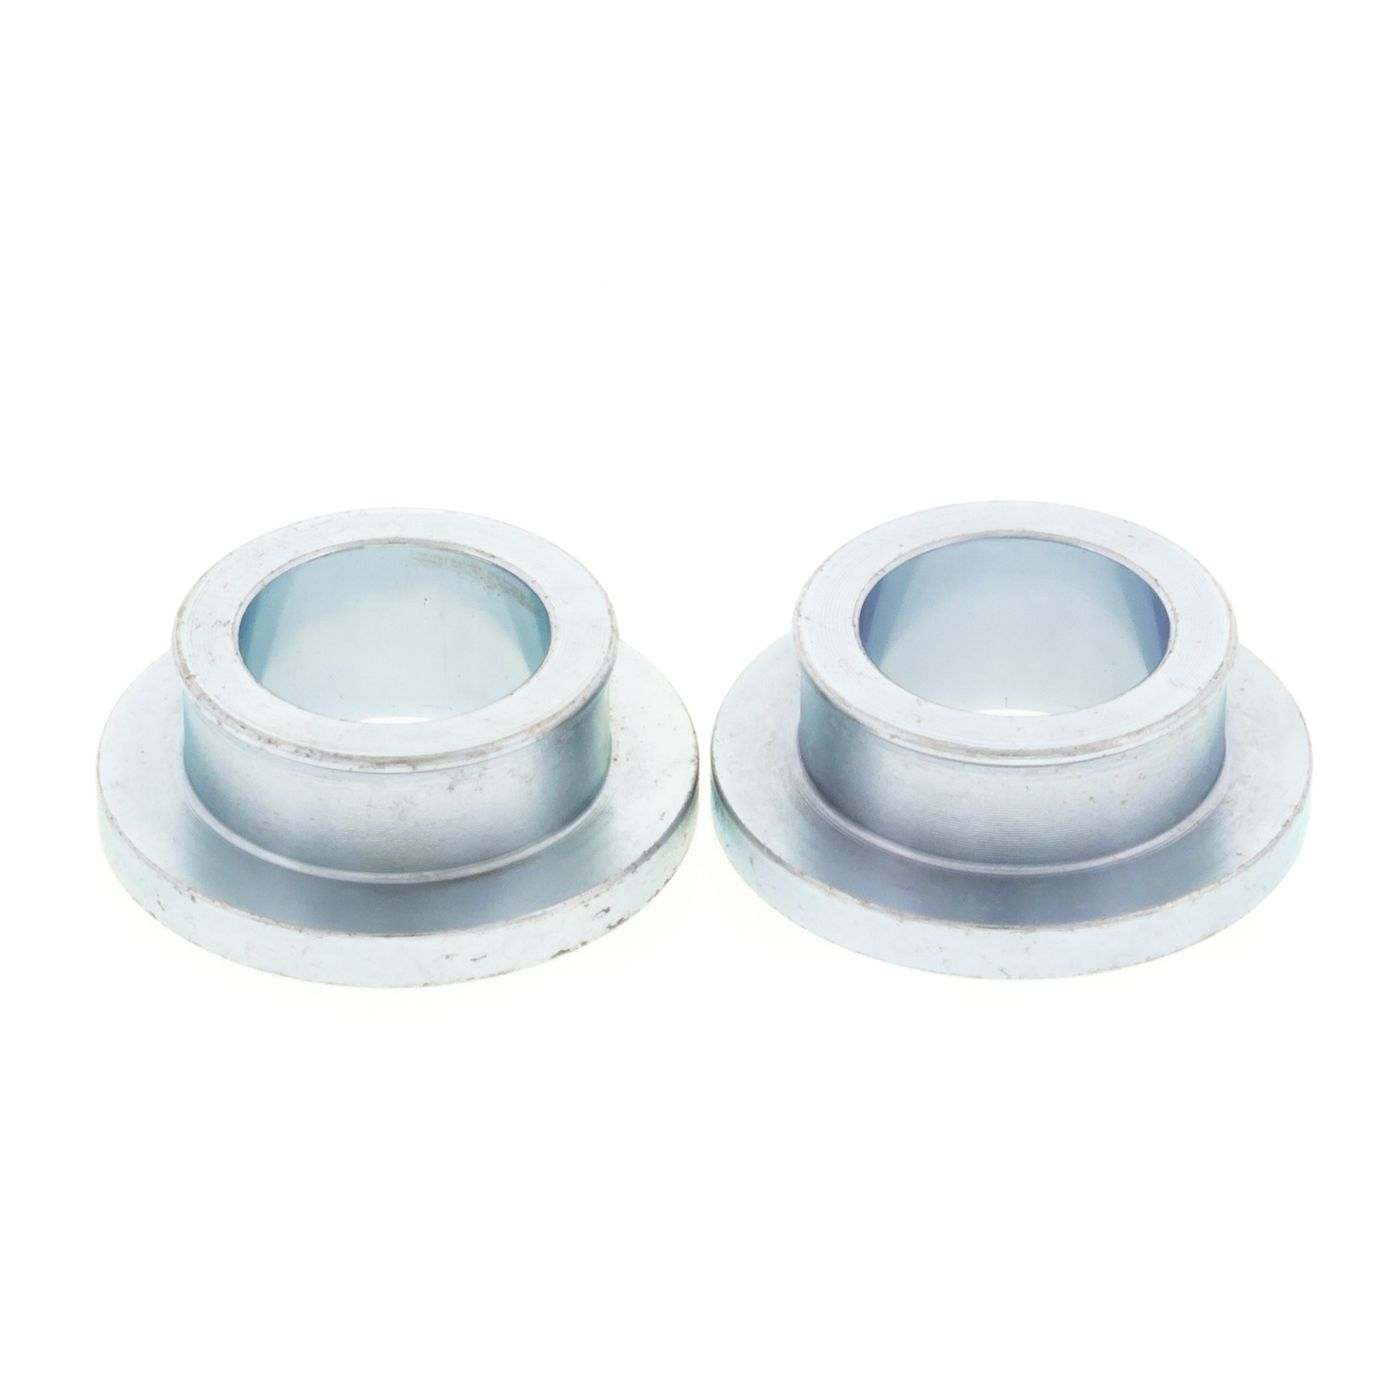 wrp rear wheel spacer kits - WRP111012 image